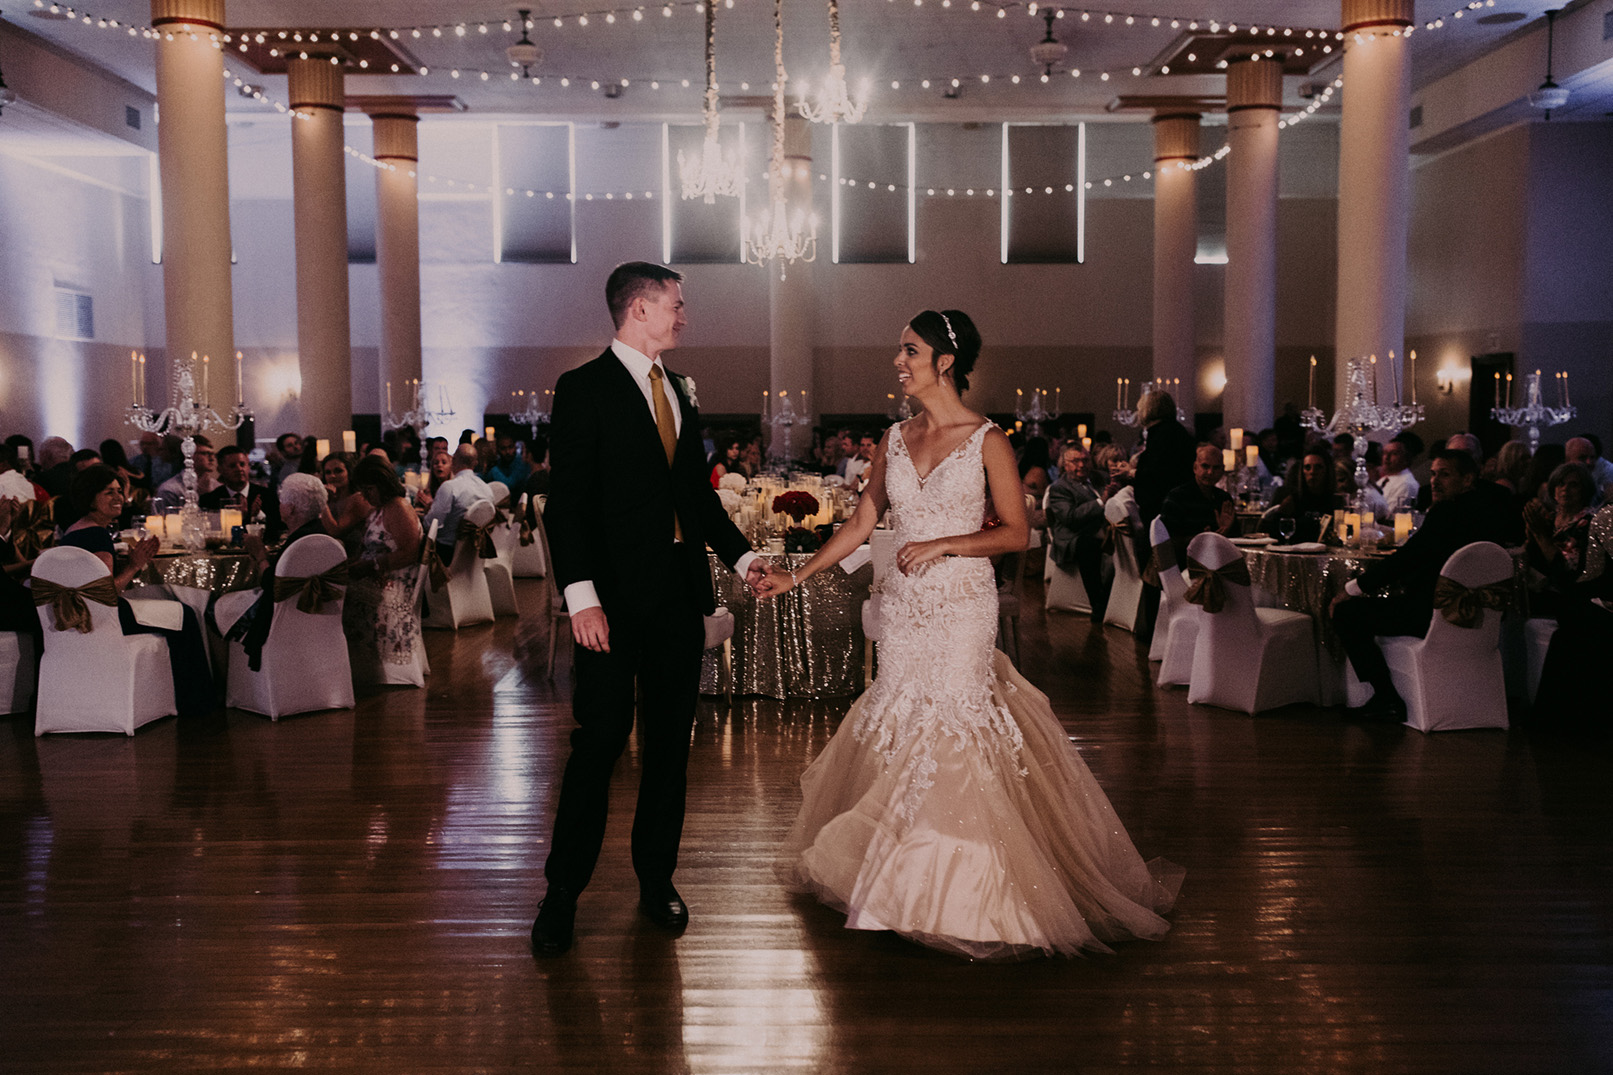 Scottish Rite Consistory, location of the 2019 Des Moines Wedding Show — The Ballroom, Kaitlin and Drew's wedding 2017